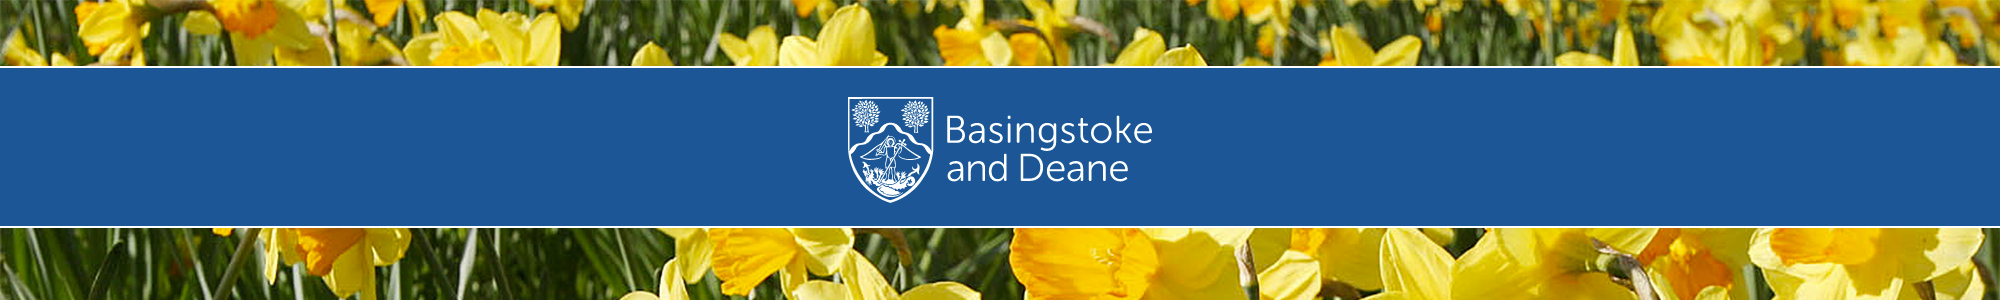 Basingstoke and Deane Borough Council